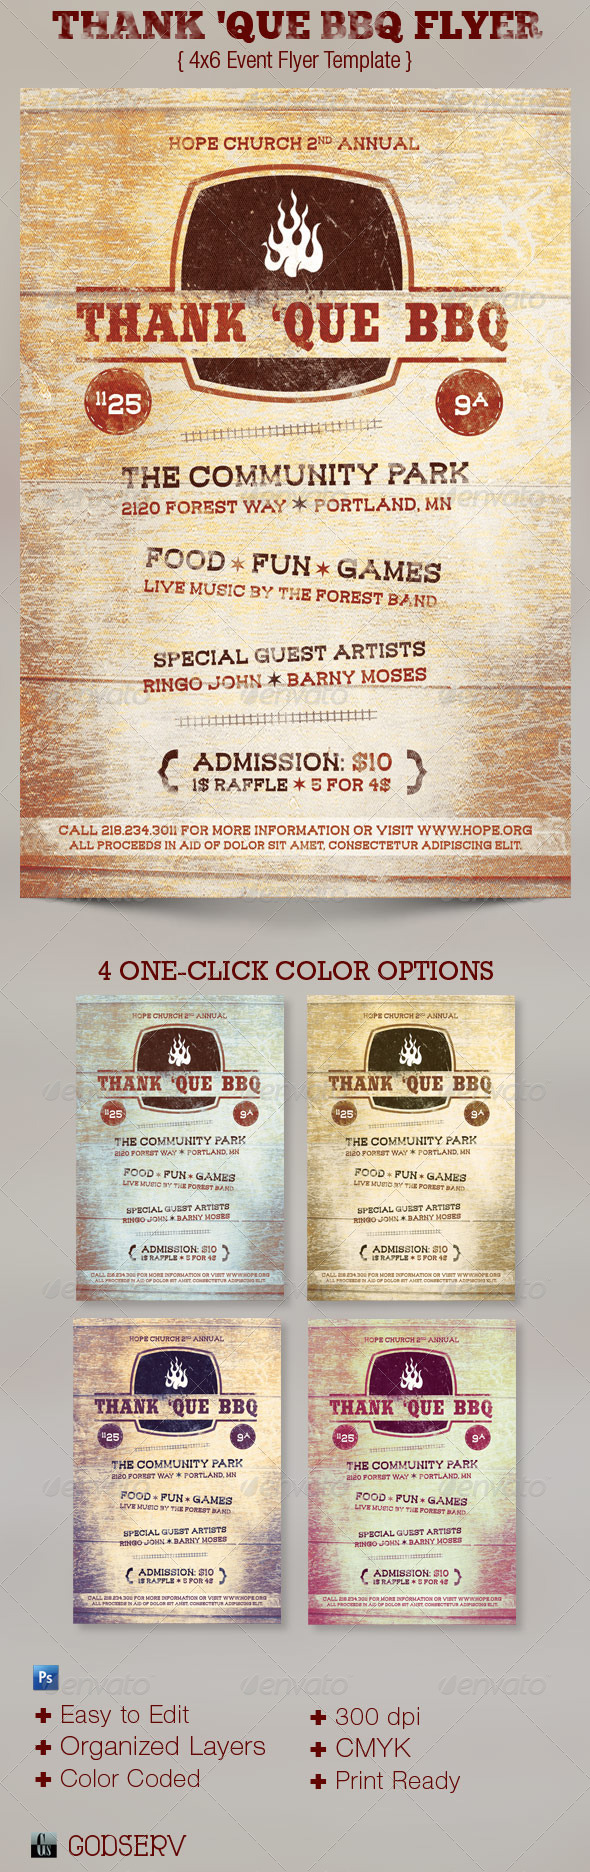 Thank 'Que Western BBQ Charity Flyer Template - Church Flyers